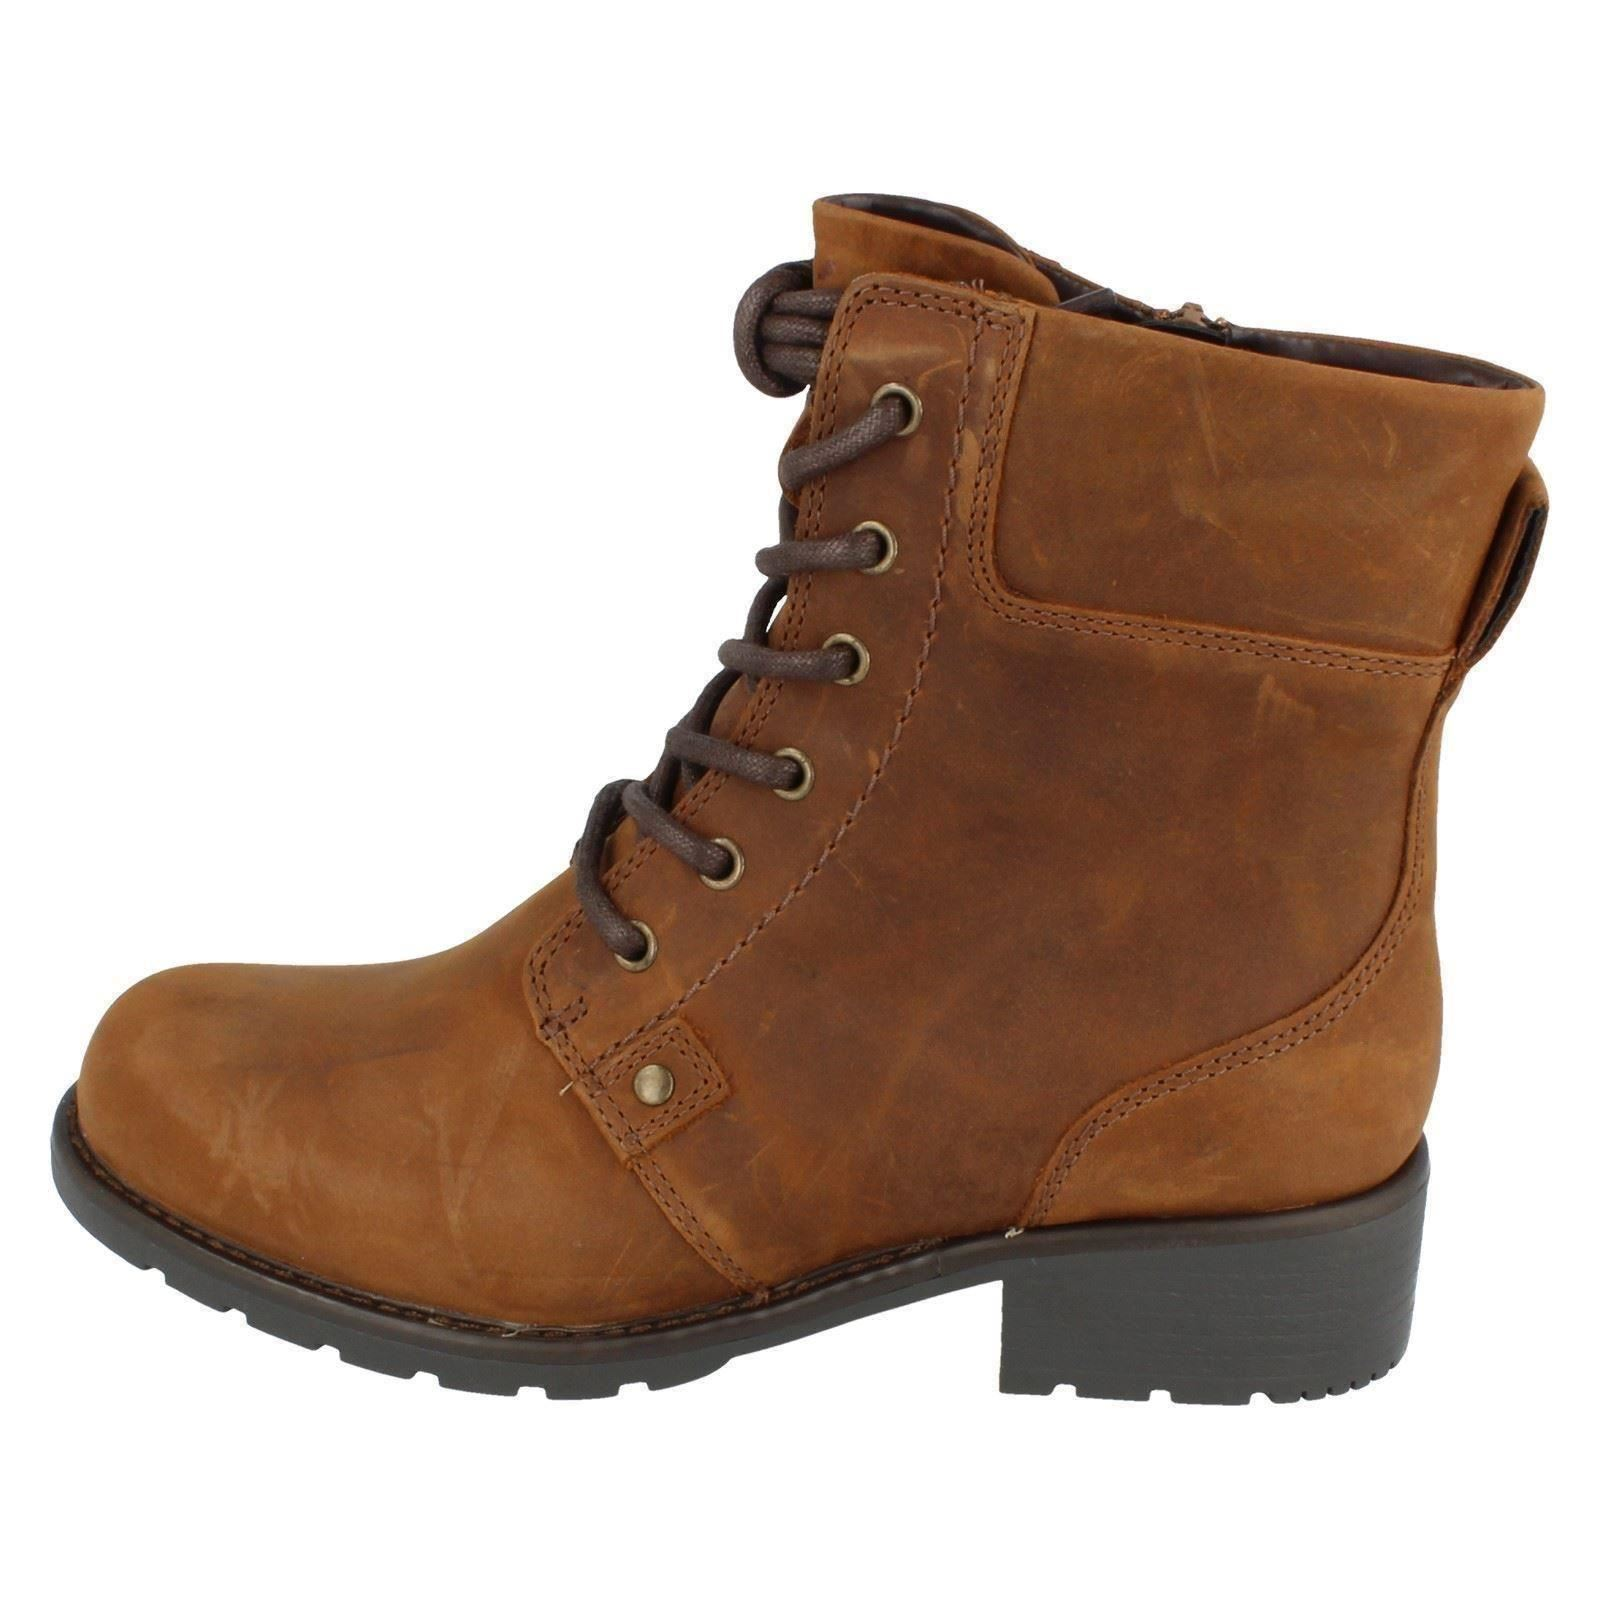 Ladies-Clarks-Casual-Lace-Up-Inside-Zip-Nubuck-Leather-Ankle-Boots-Orinoco-Spice thumbnail 21